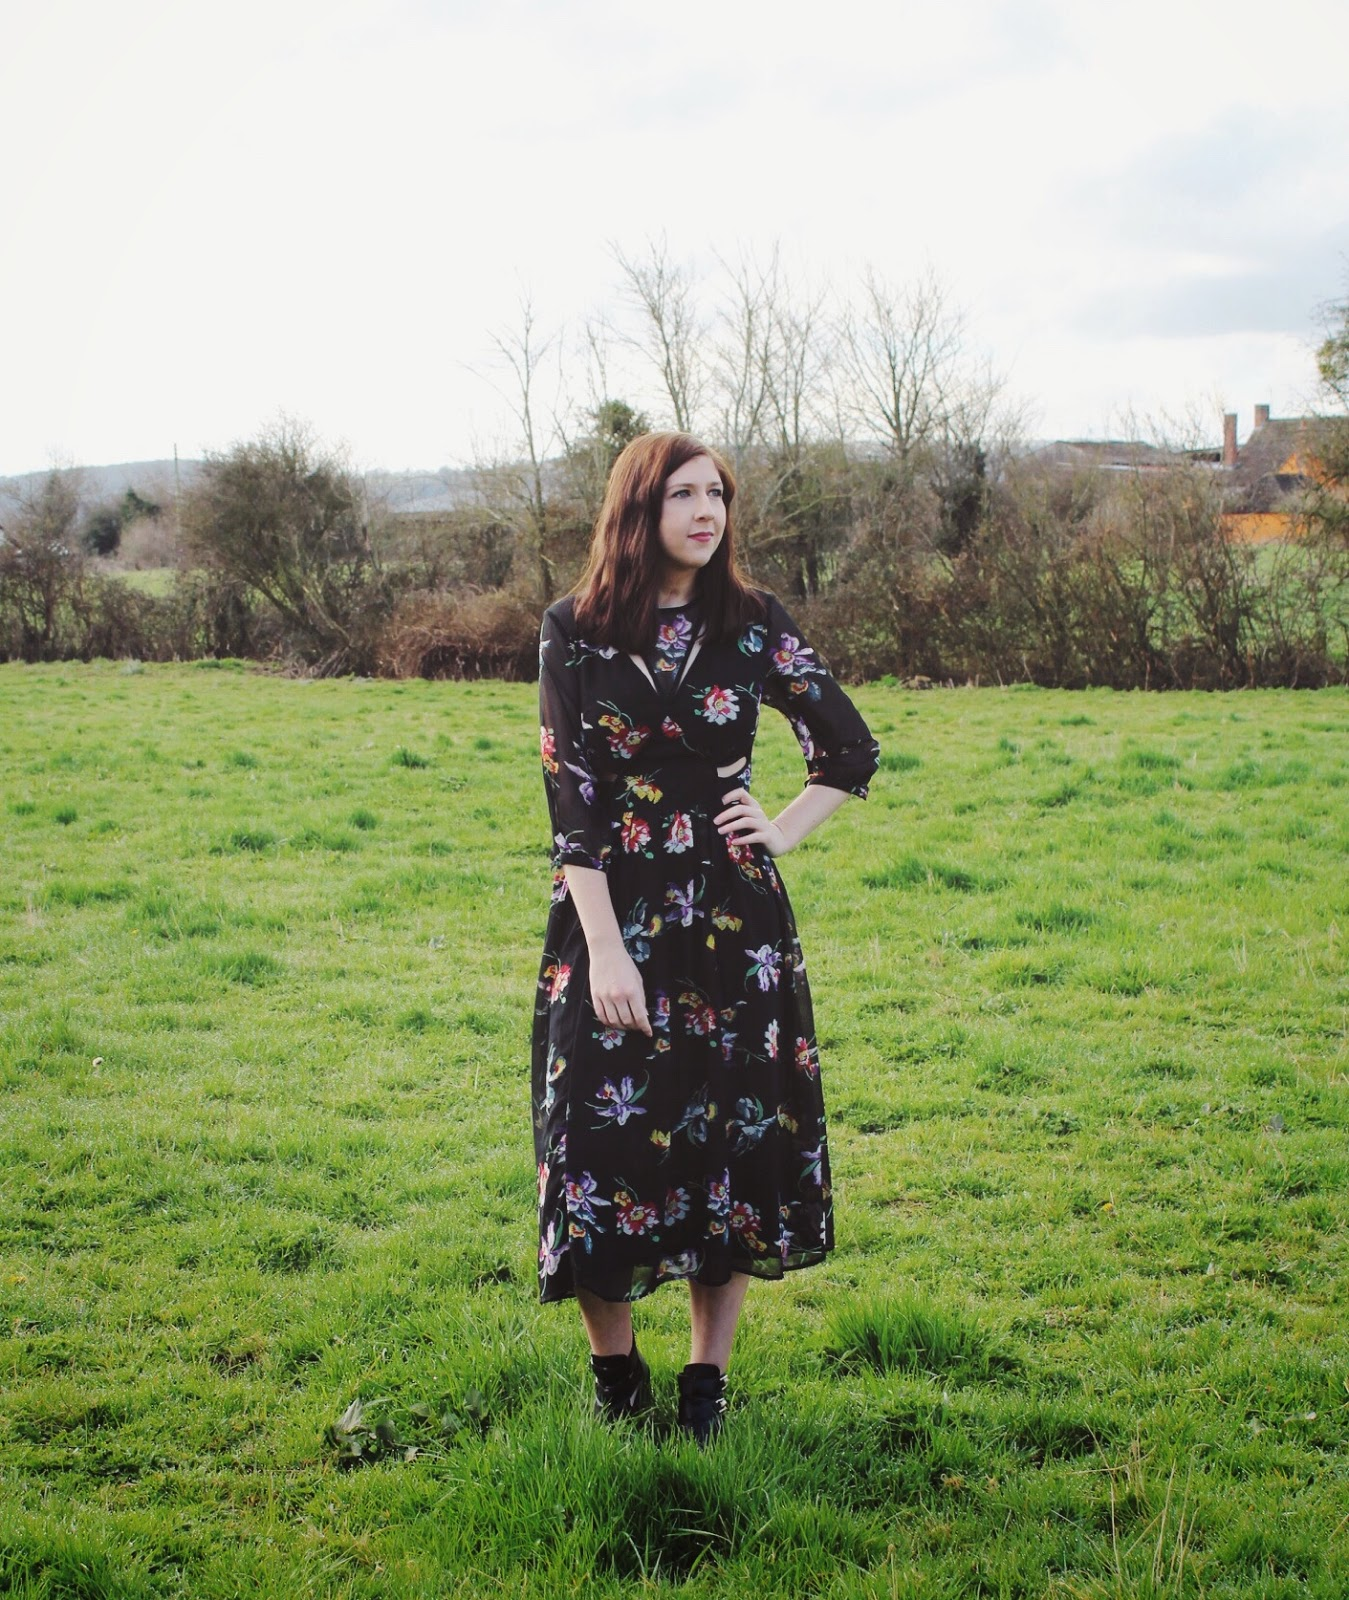 asos, blogiversary, wiw, whatimwearing, halcyonvelvet, oneyearblogging, asseenonme, fbloggers, fblogger, celebration, fashionblogger, fashionbloggers, lotd, lookoftheday, ootd, florals, boho, bohemia, florencewelch